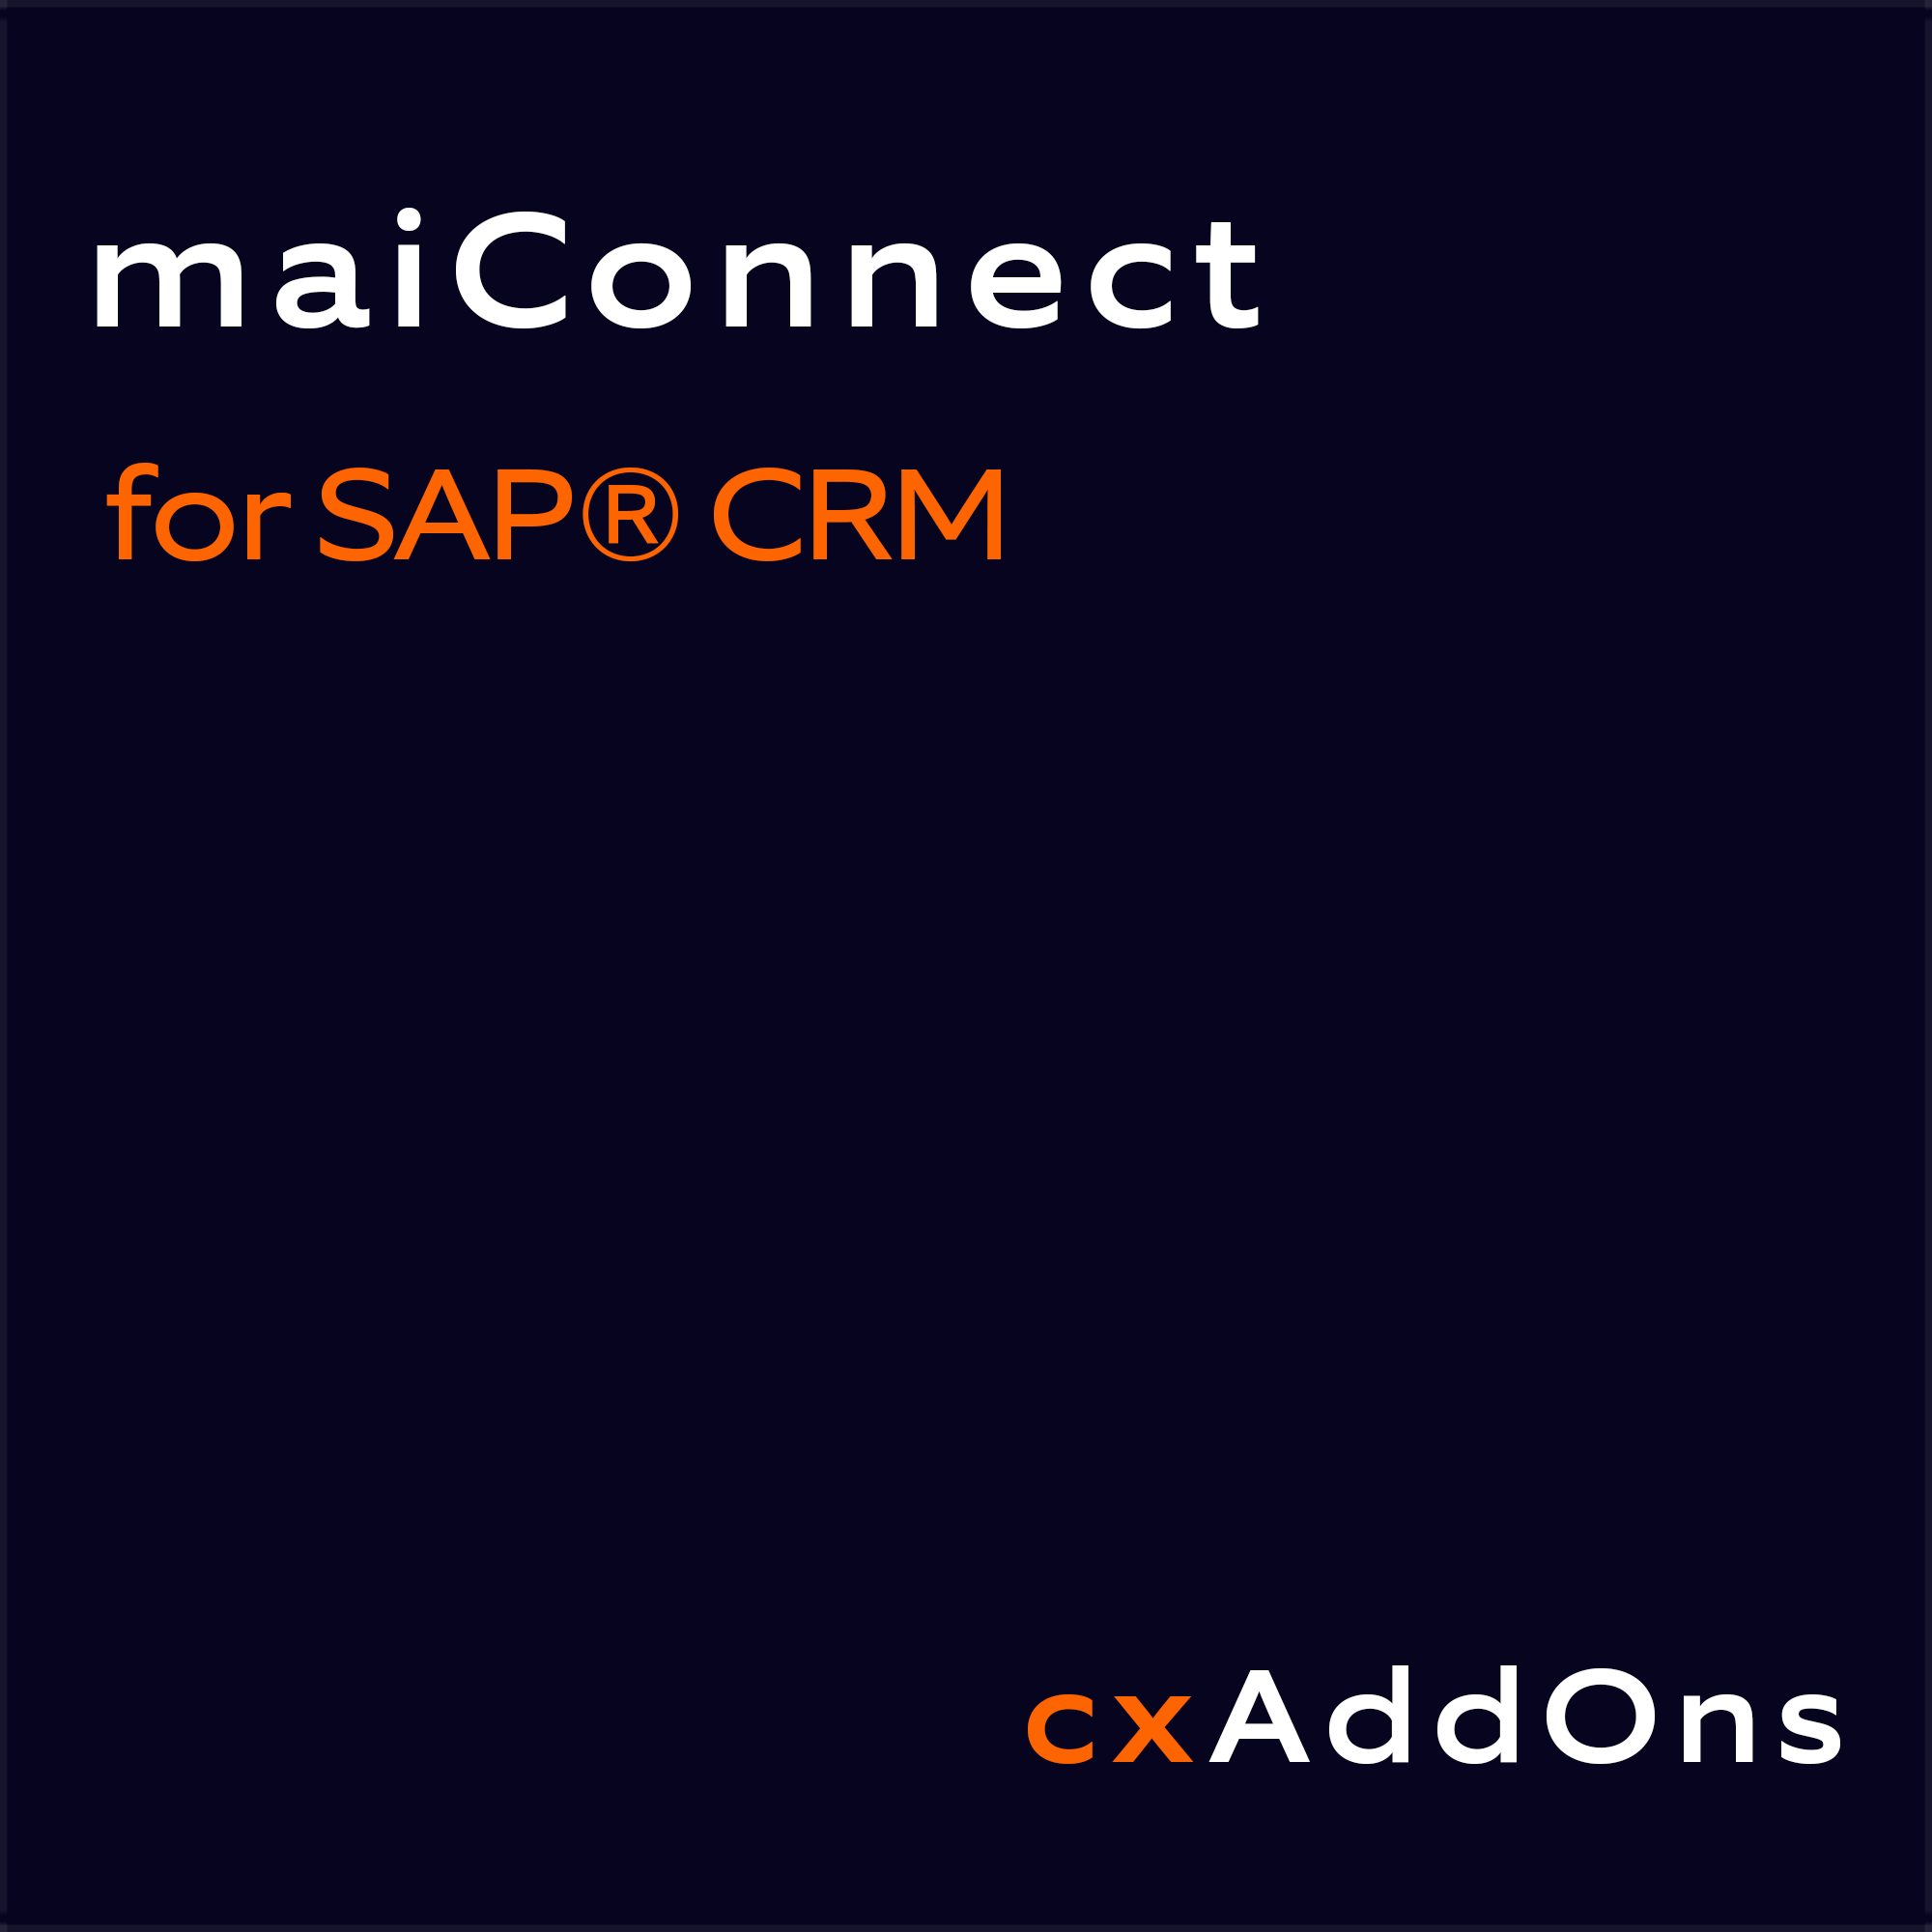 Nagarro ES maiConnect for SAP CRM